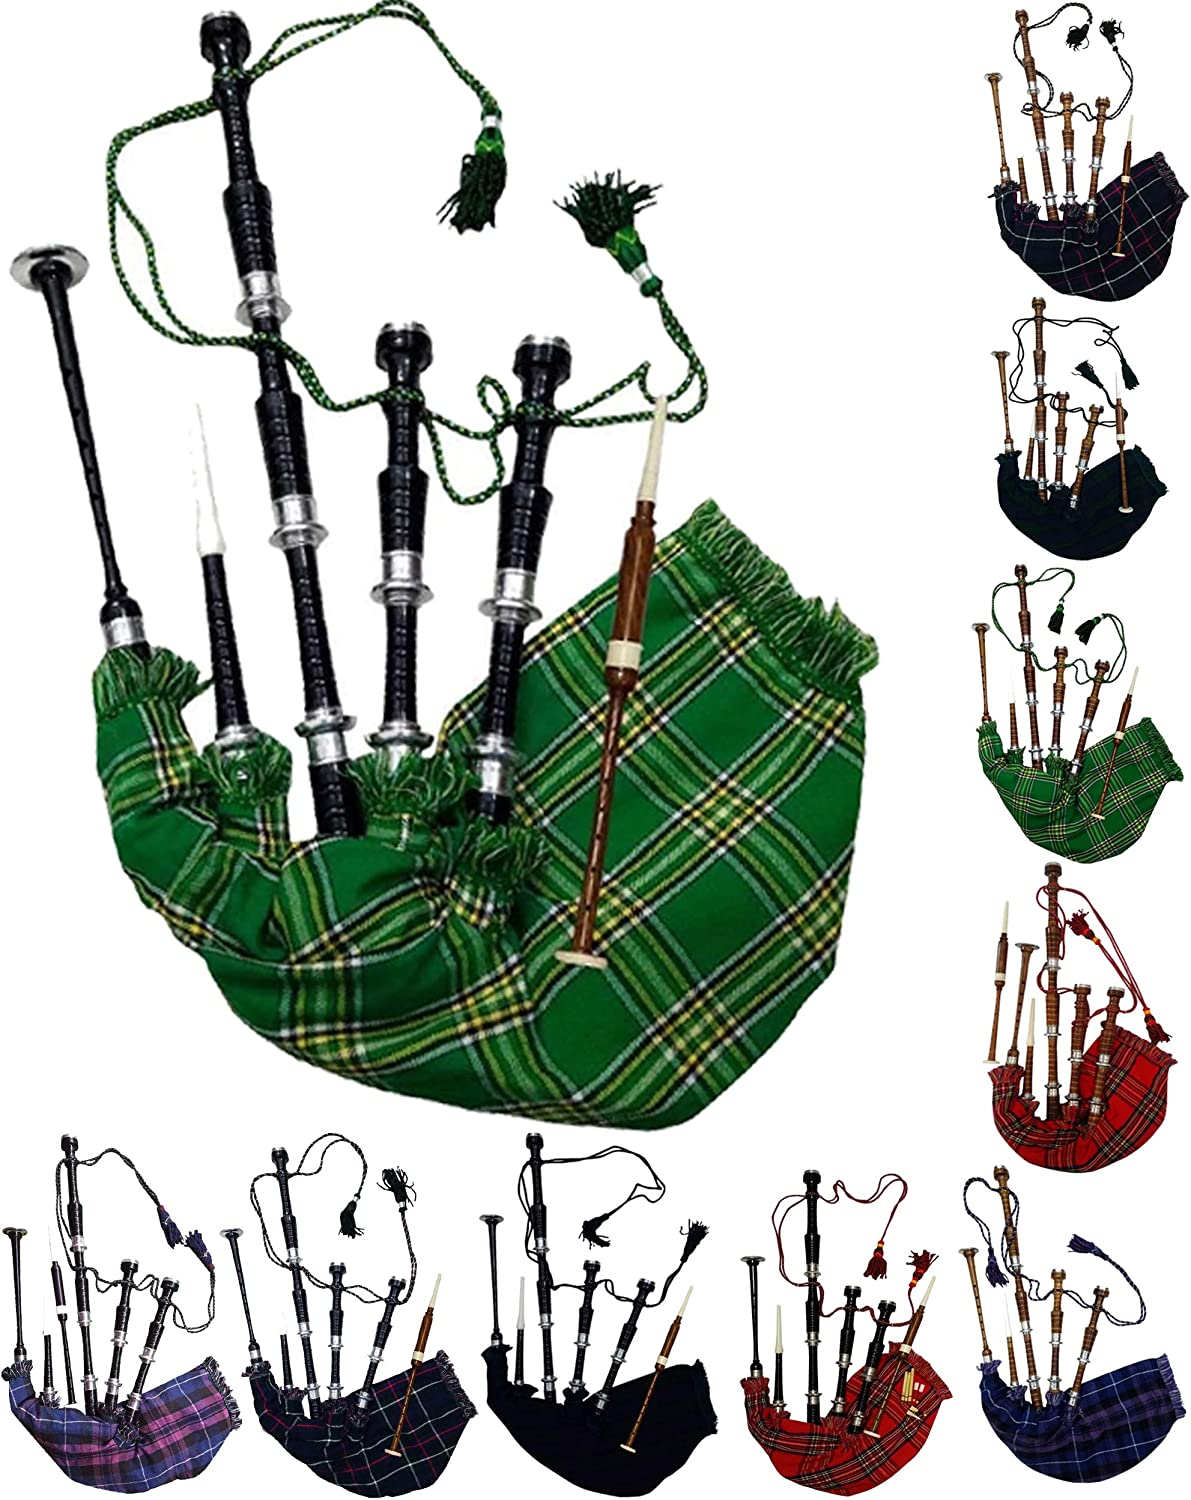 Scottish Full Size Bagpipe Rosewood or Black Finish with Silver Plain Mounts Free Tutor Book, Carrying Bag, Drone, Reeds